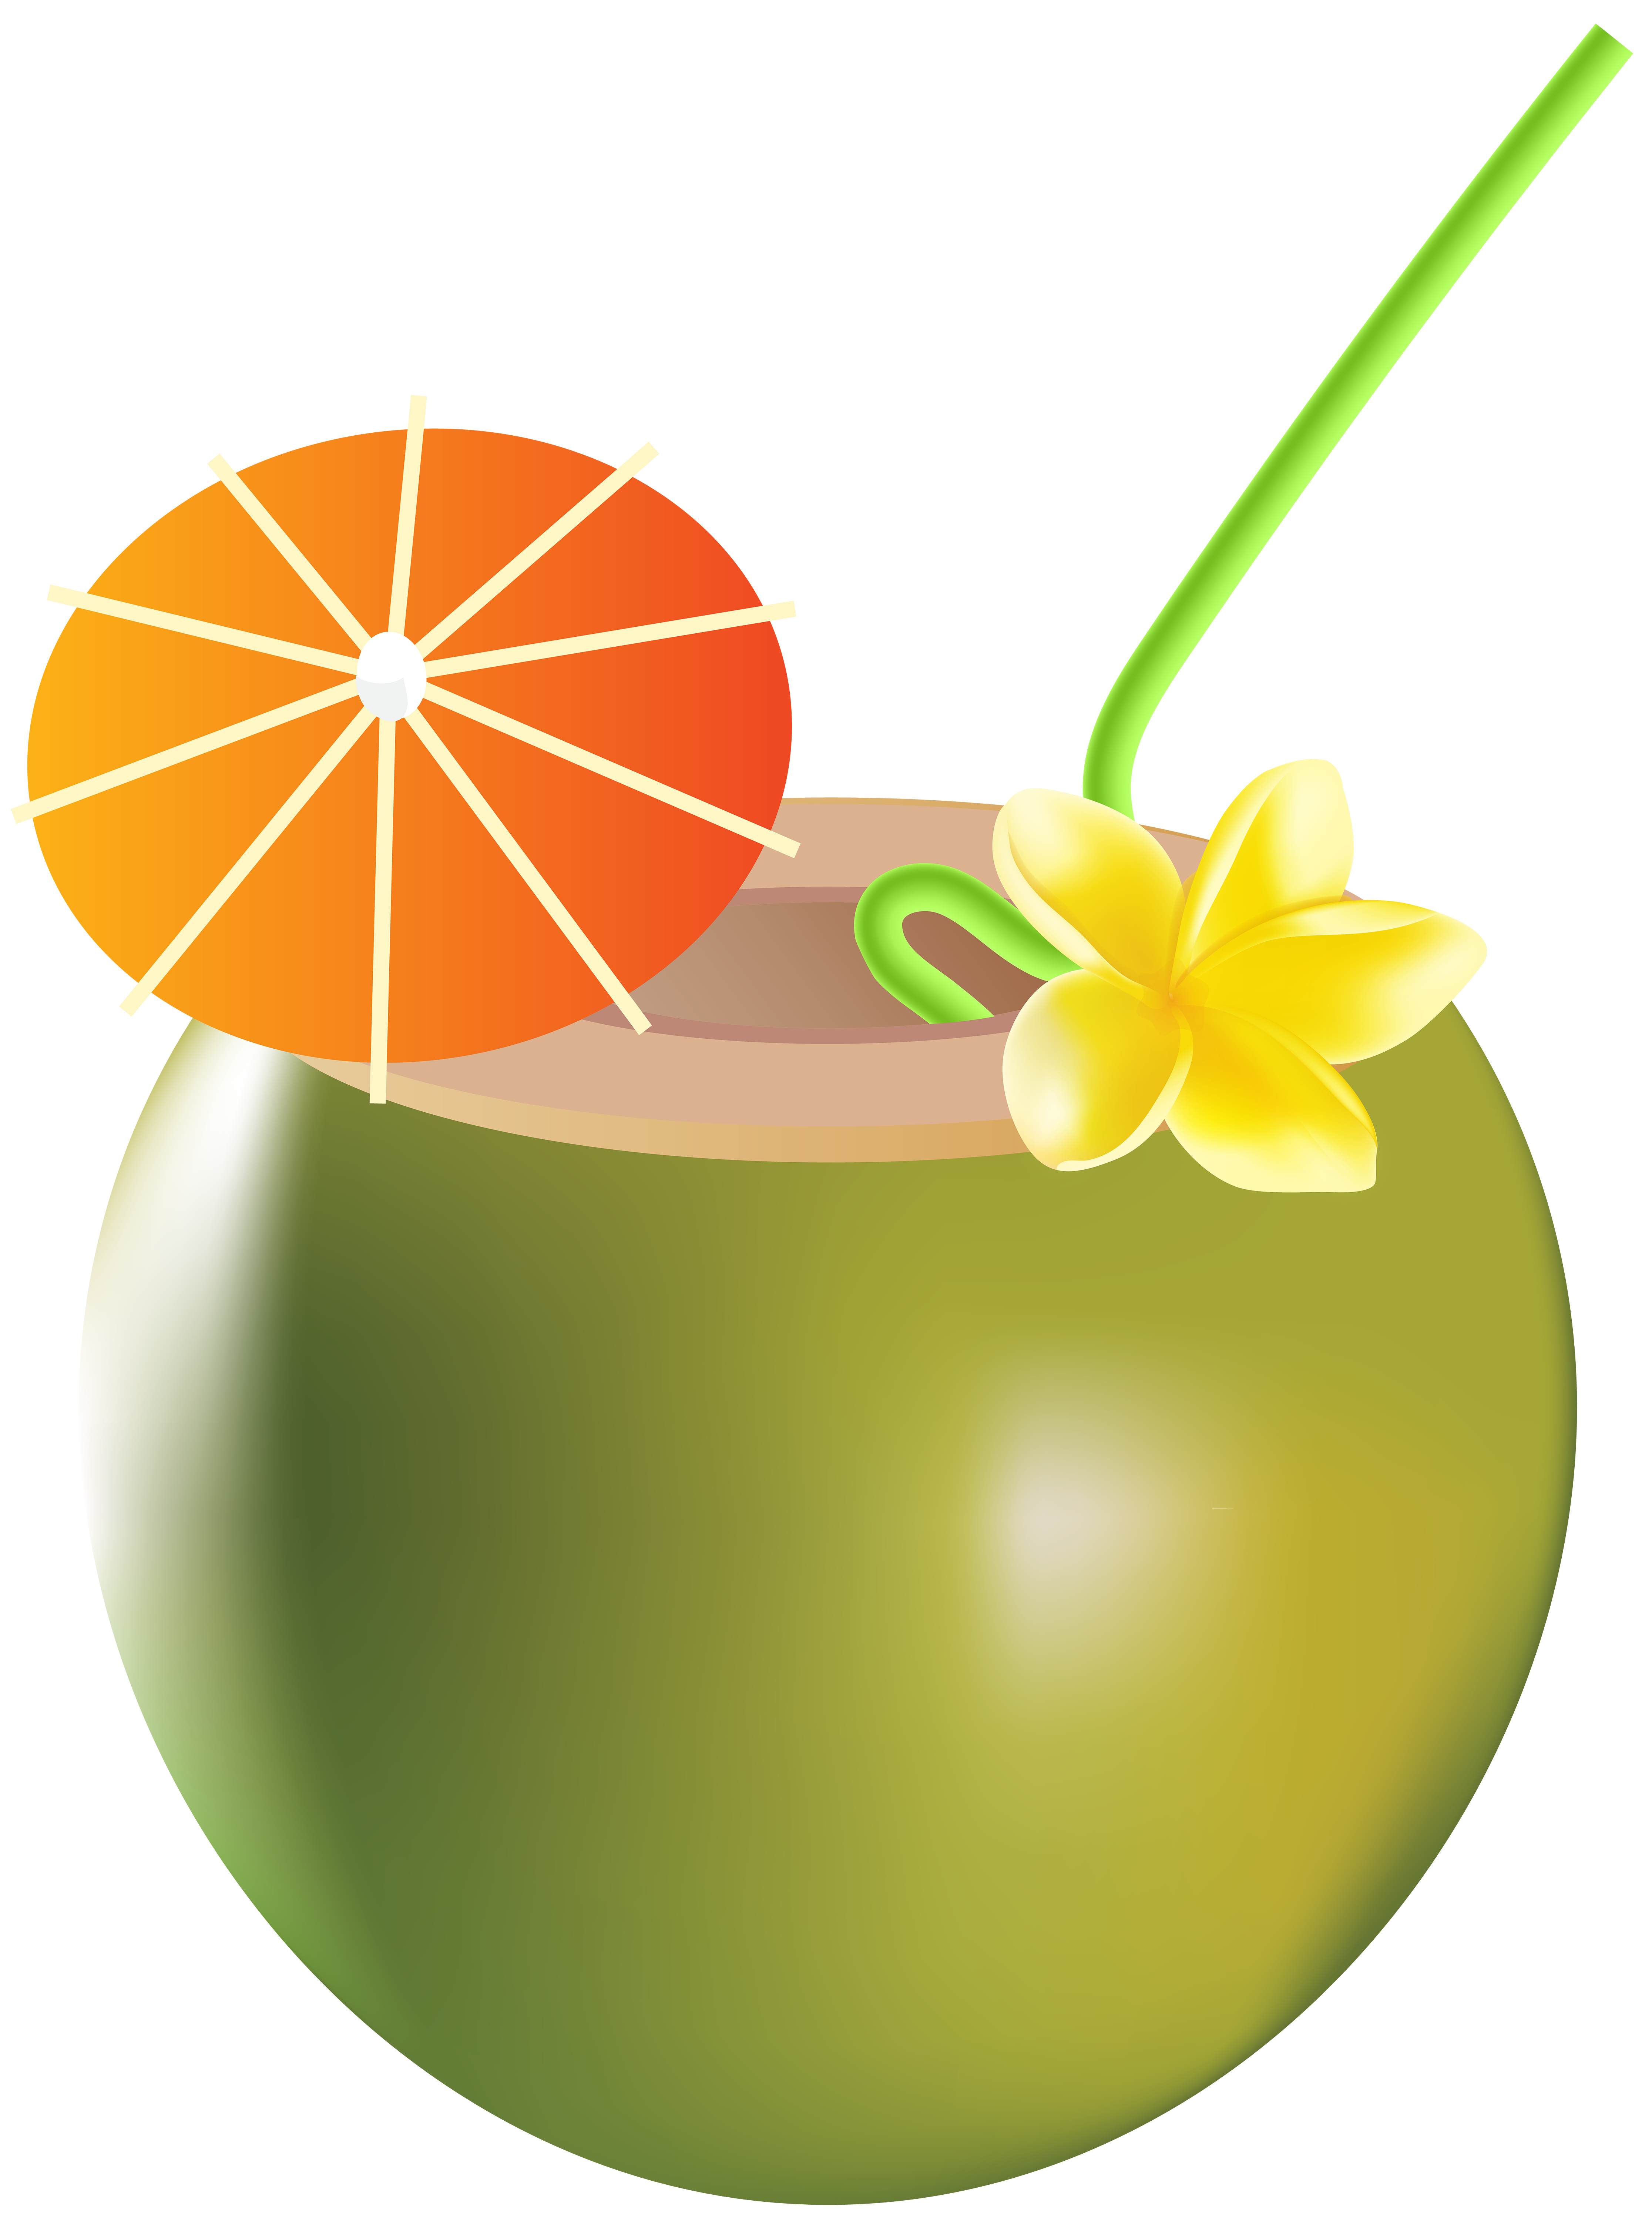 Halloween drinks clipart jpg transparent library Summer Drink Clip Art PNG Image | Gallery Yopriceville - High ... jpg transparent library